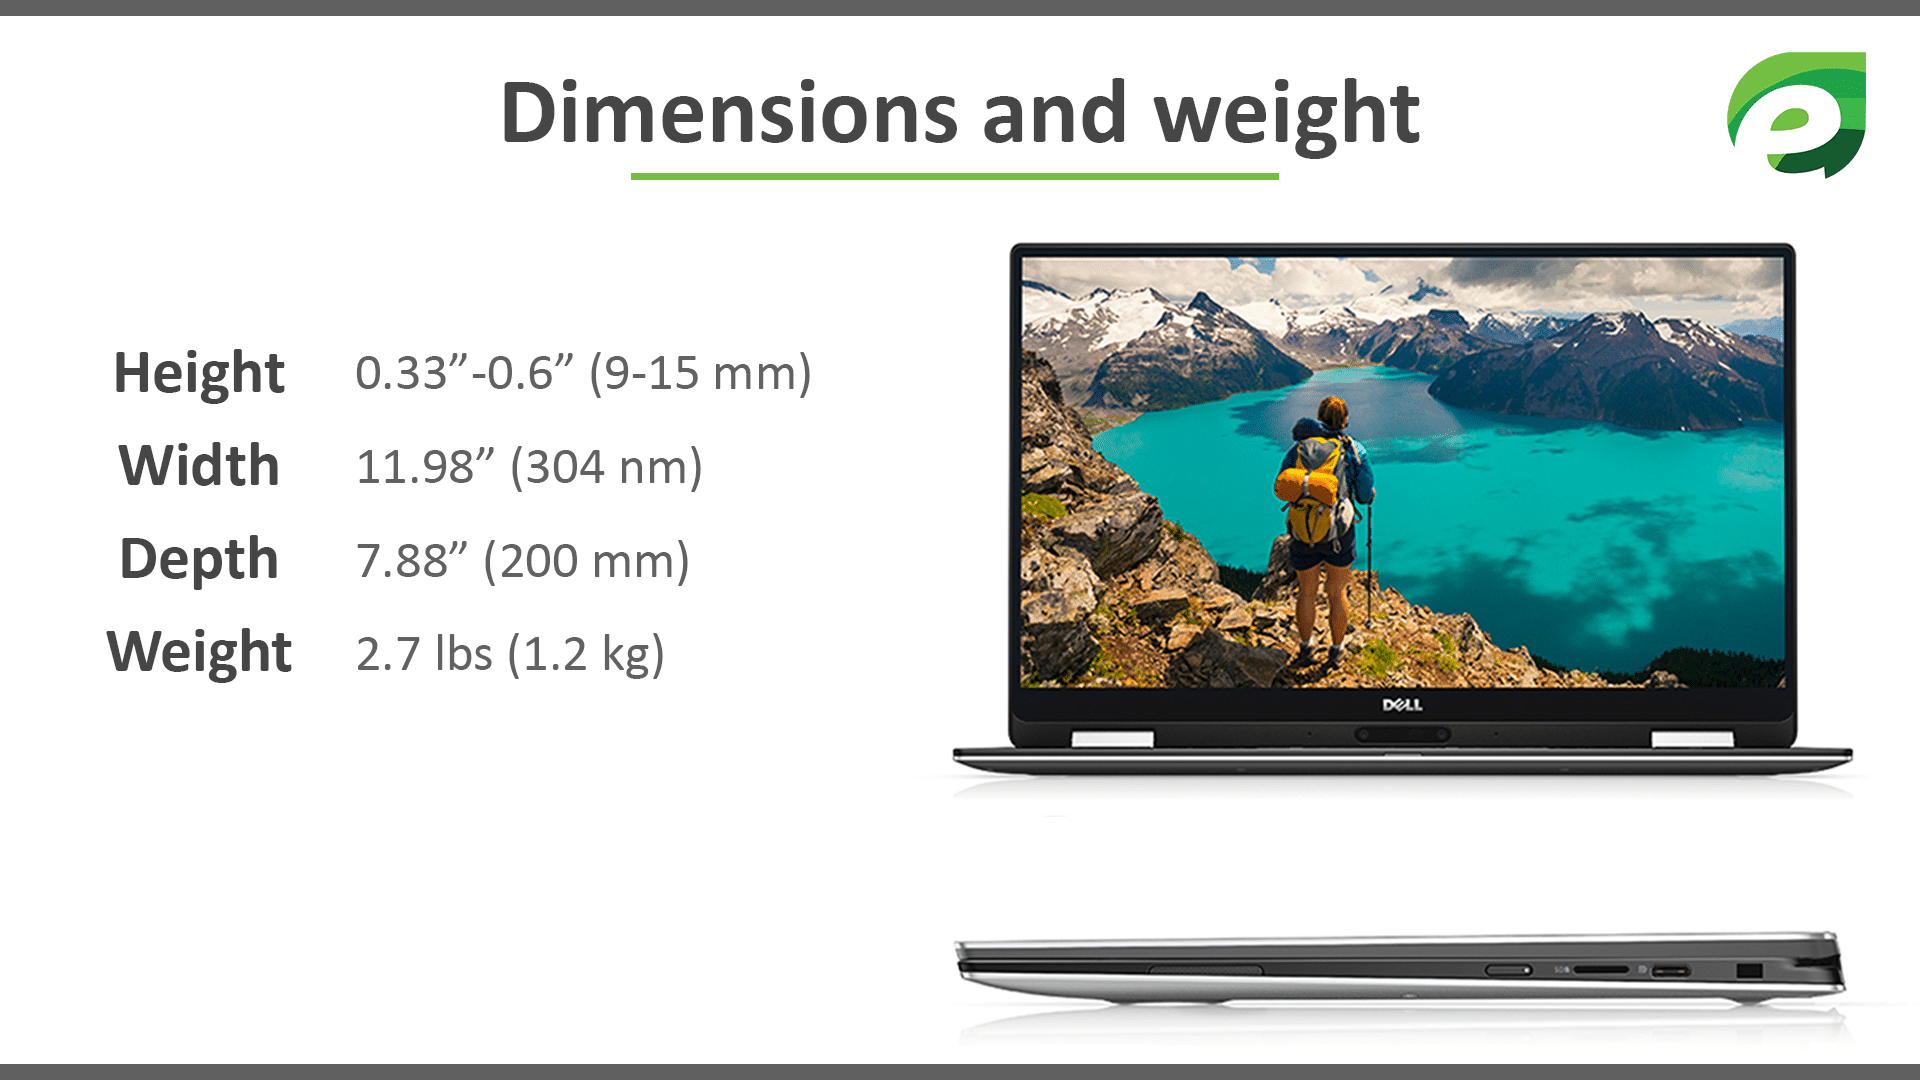 Dell XPS 13- dimensions